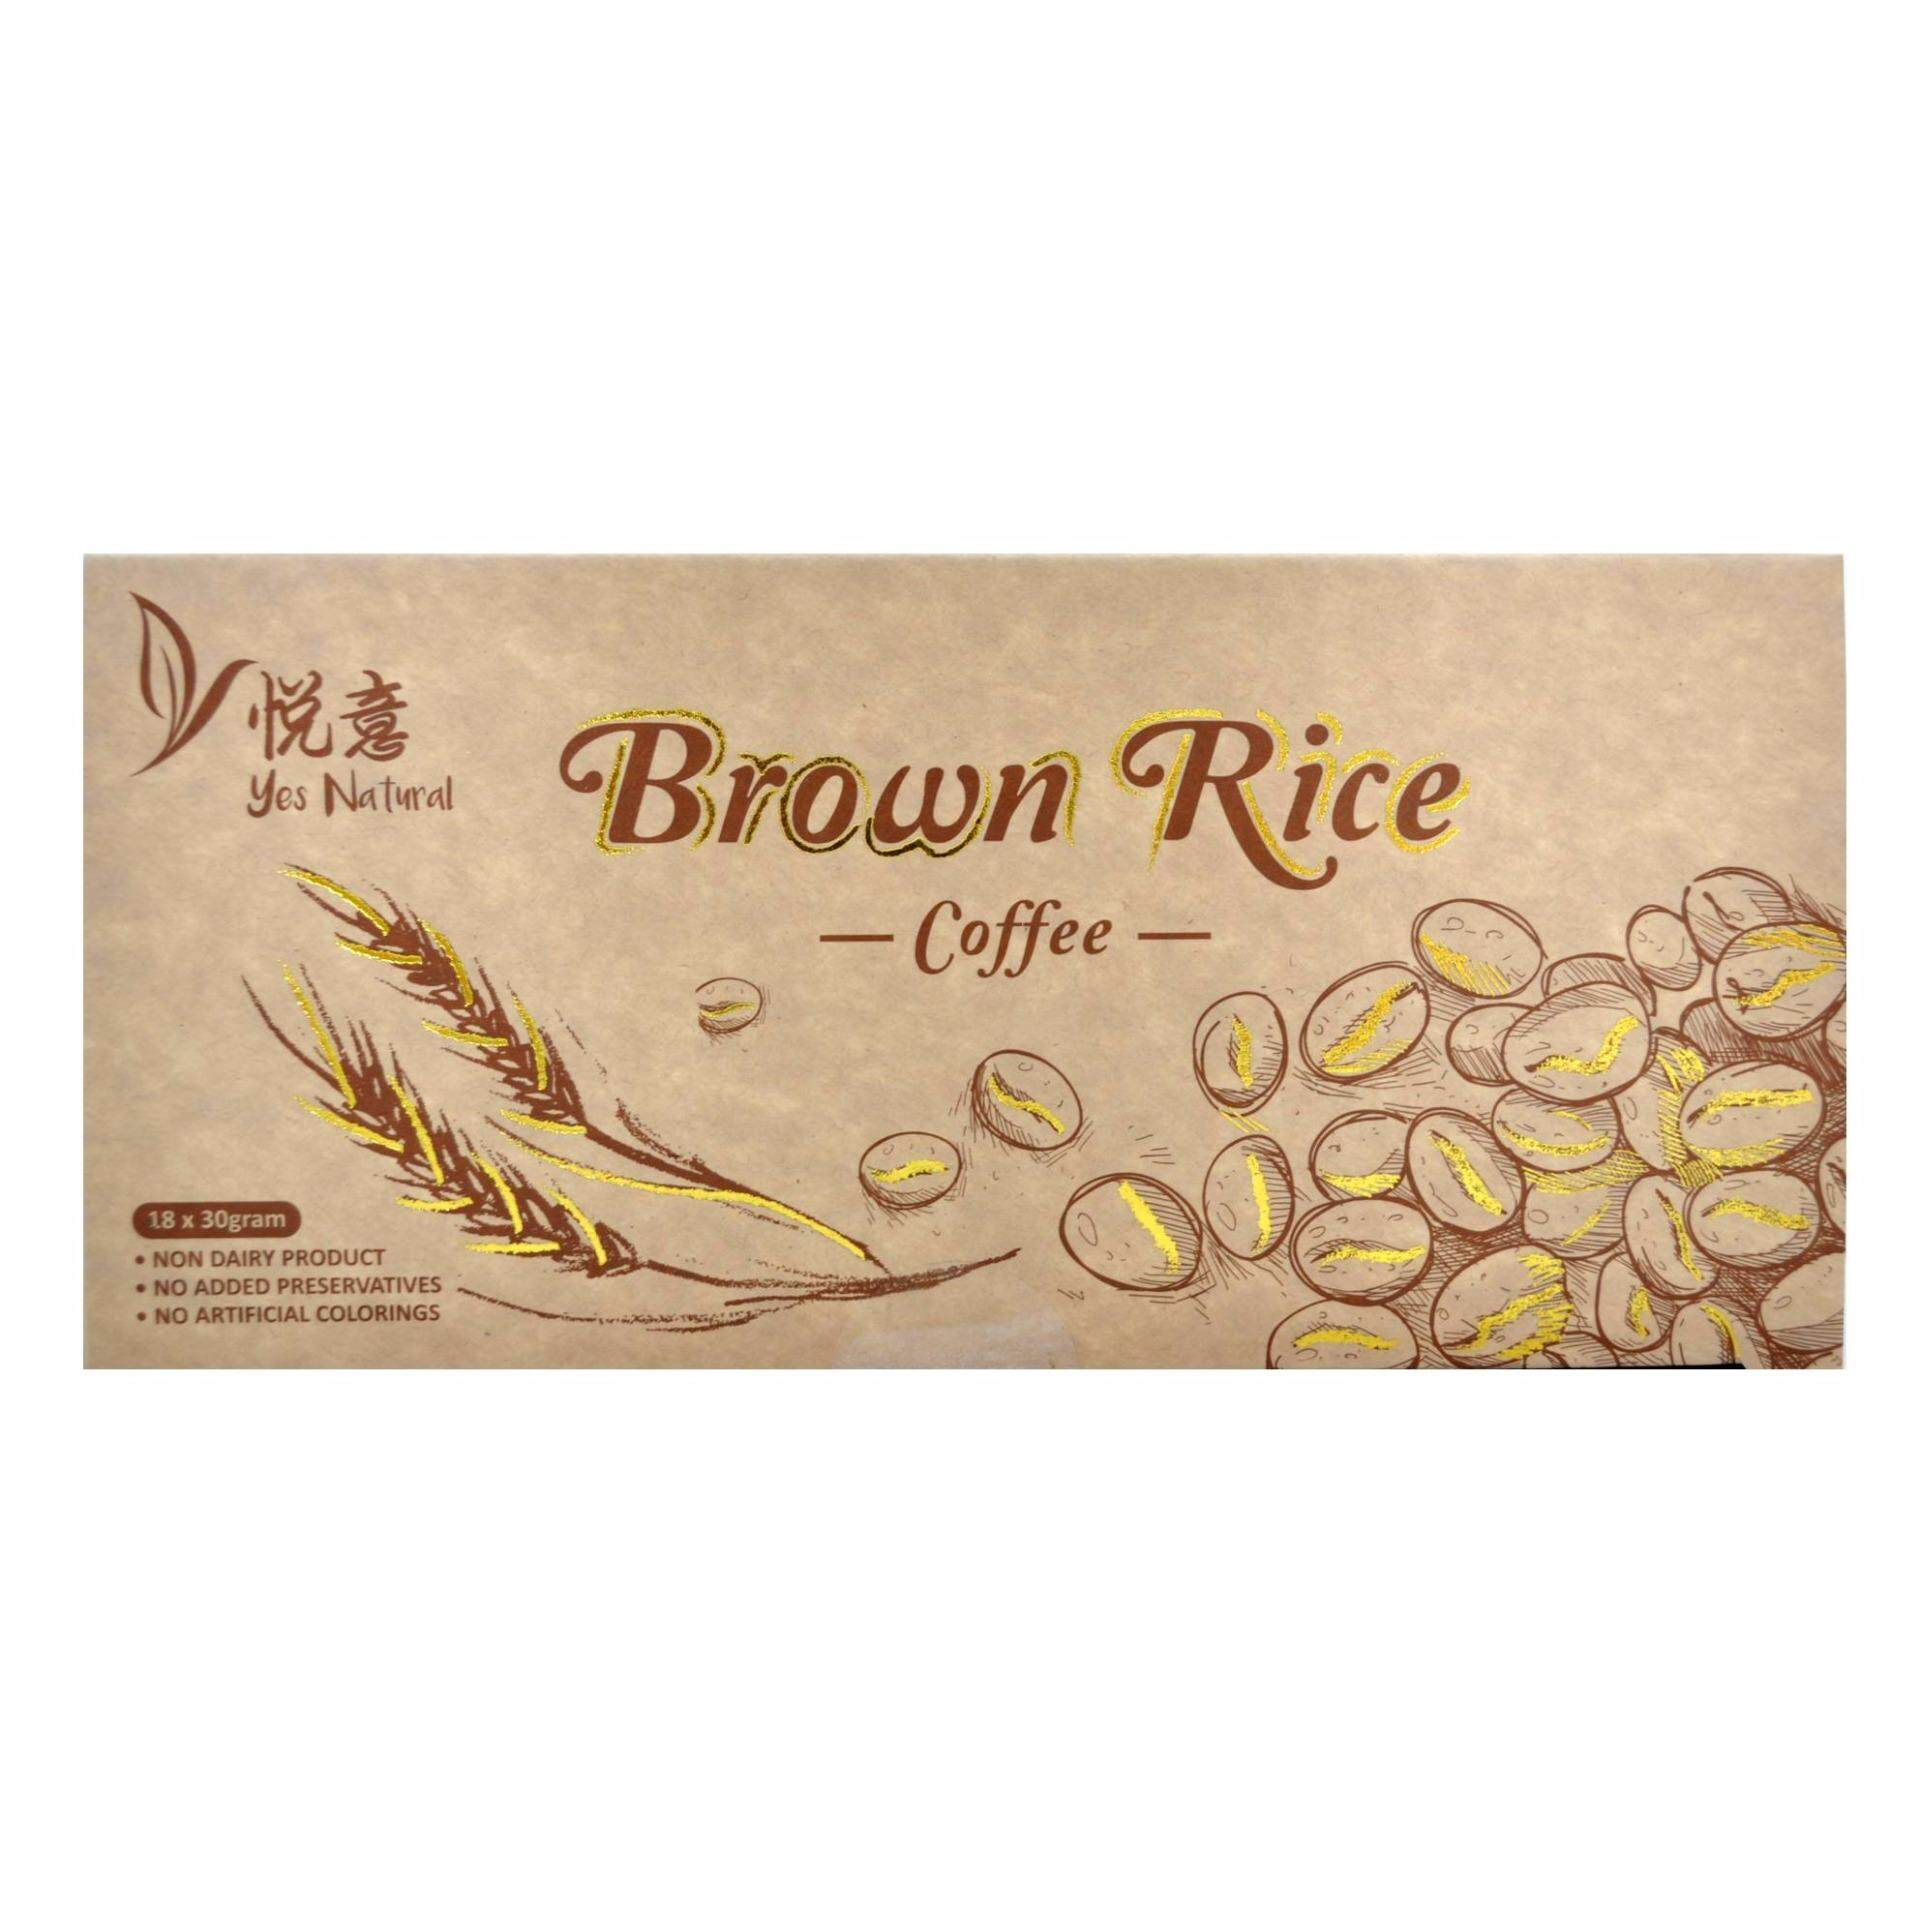 YES NATURAL Brown Rice Coffee 30g x 18 sachet / box